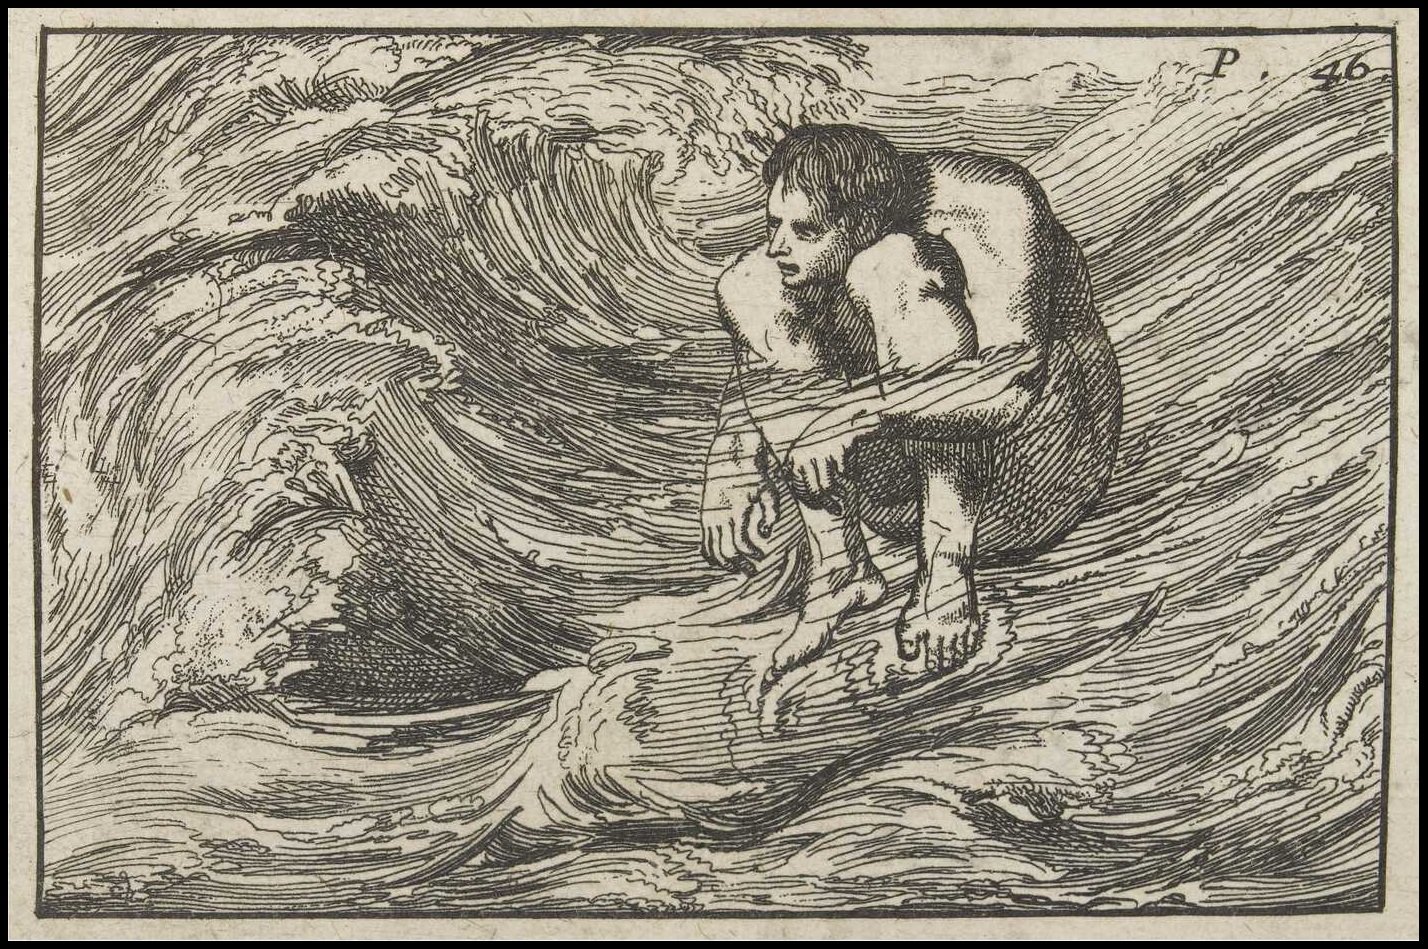 unsophisticated illustration 1699 : man sitting down in river